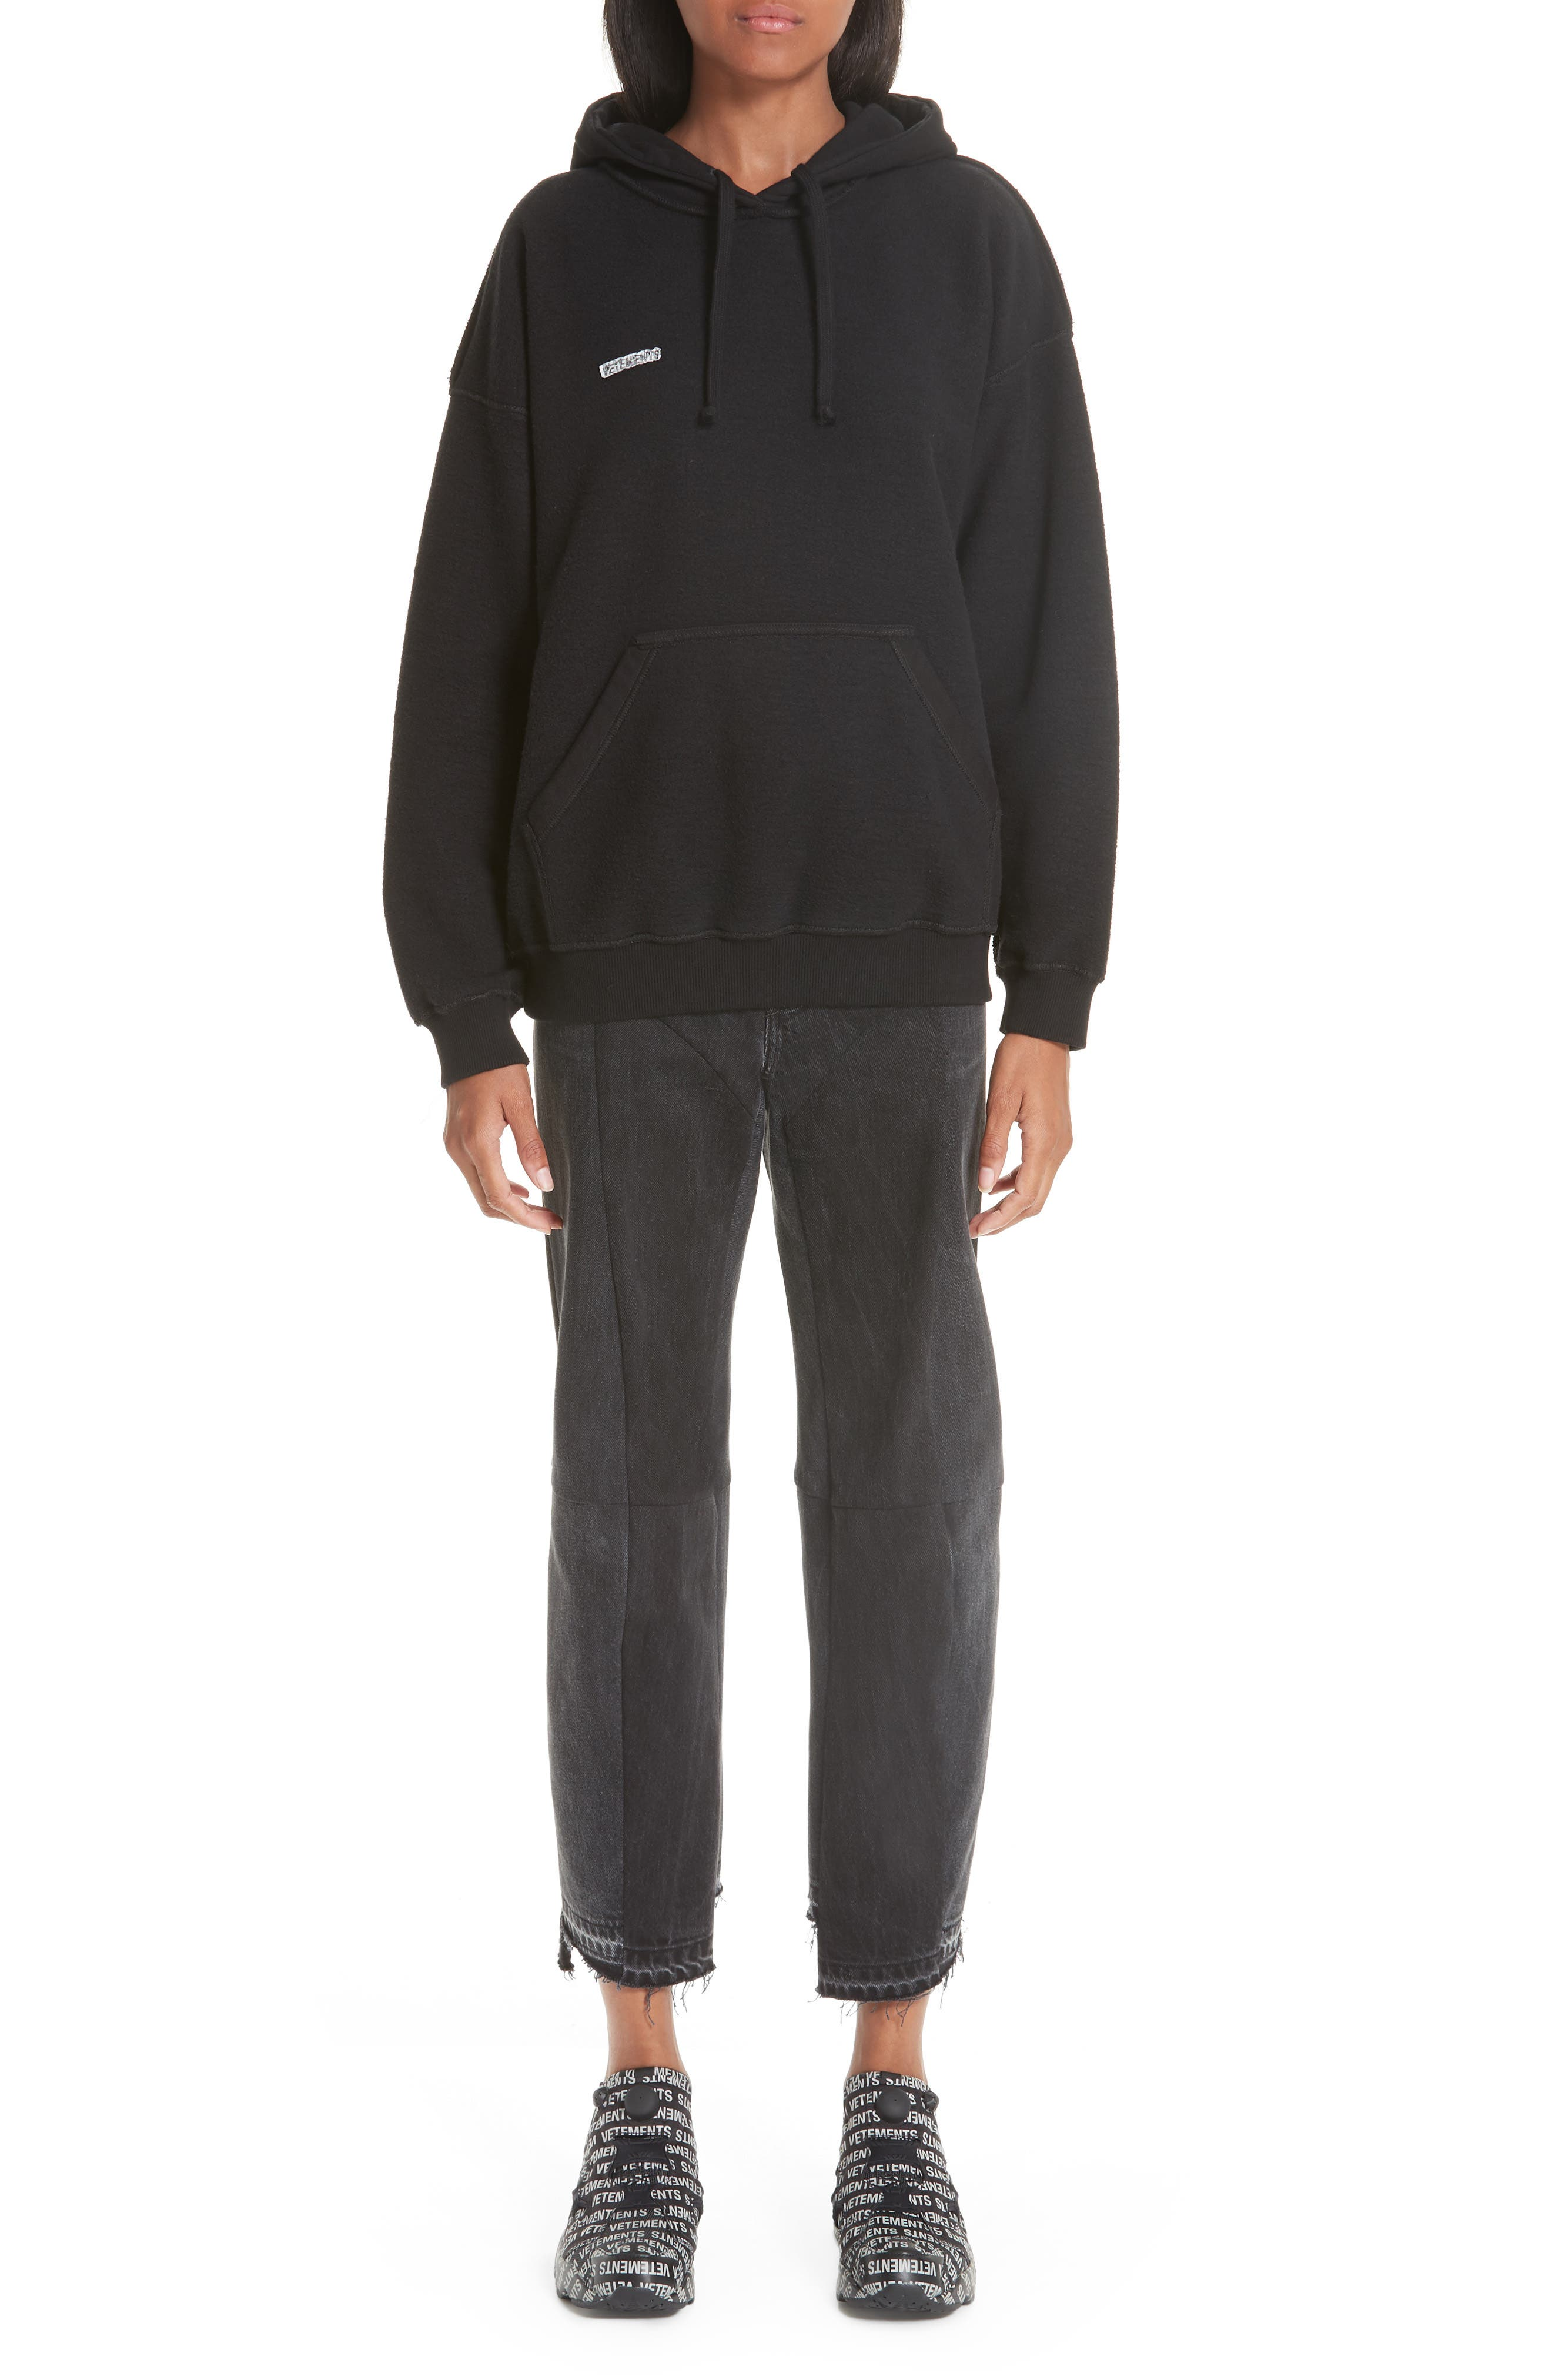 Inside-Out Hoodie,                             Alternate thumbnail 7, color,                             BLACK